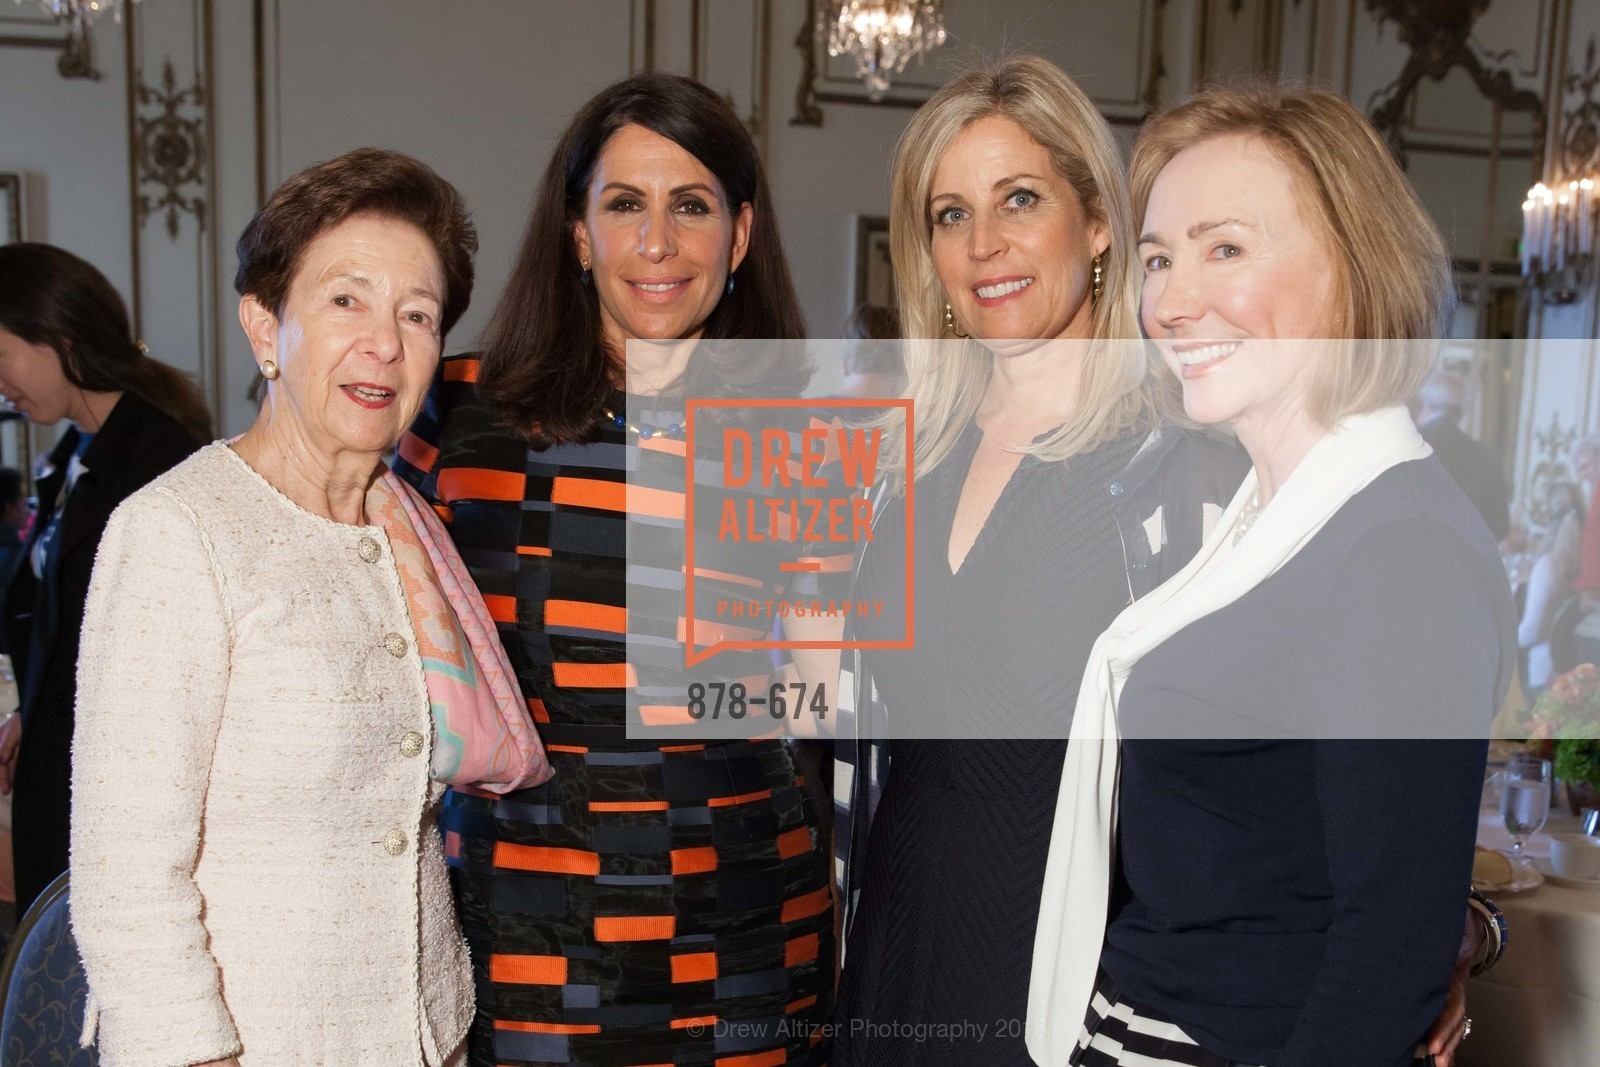 Roselyne Swig, Lisa Grotts, Jane Inch, Trish Otstott, Junior League of San Francisco's WATCH Luncheon, Fairmont Hotel. 950 Mason Street, May 4th, 2015,Drew Altizer, Drew Altizer Photography, full-service agency, private events, San Francisco photographer, photographer california